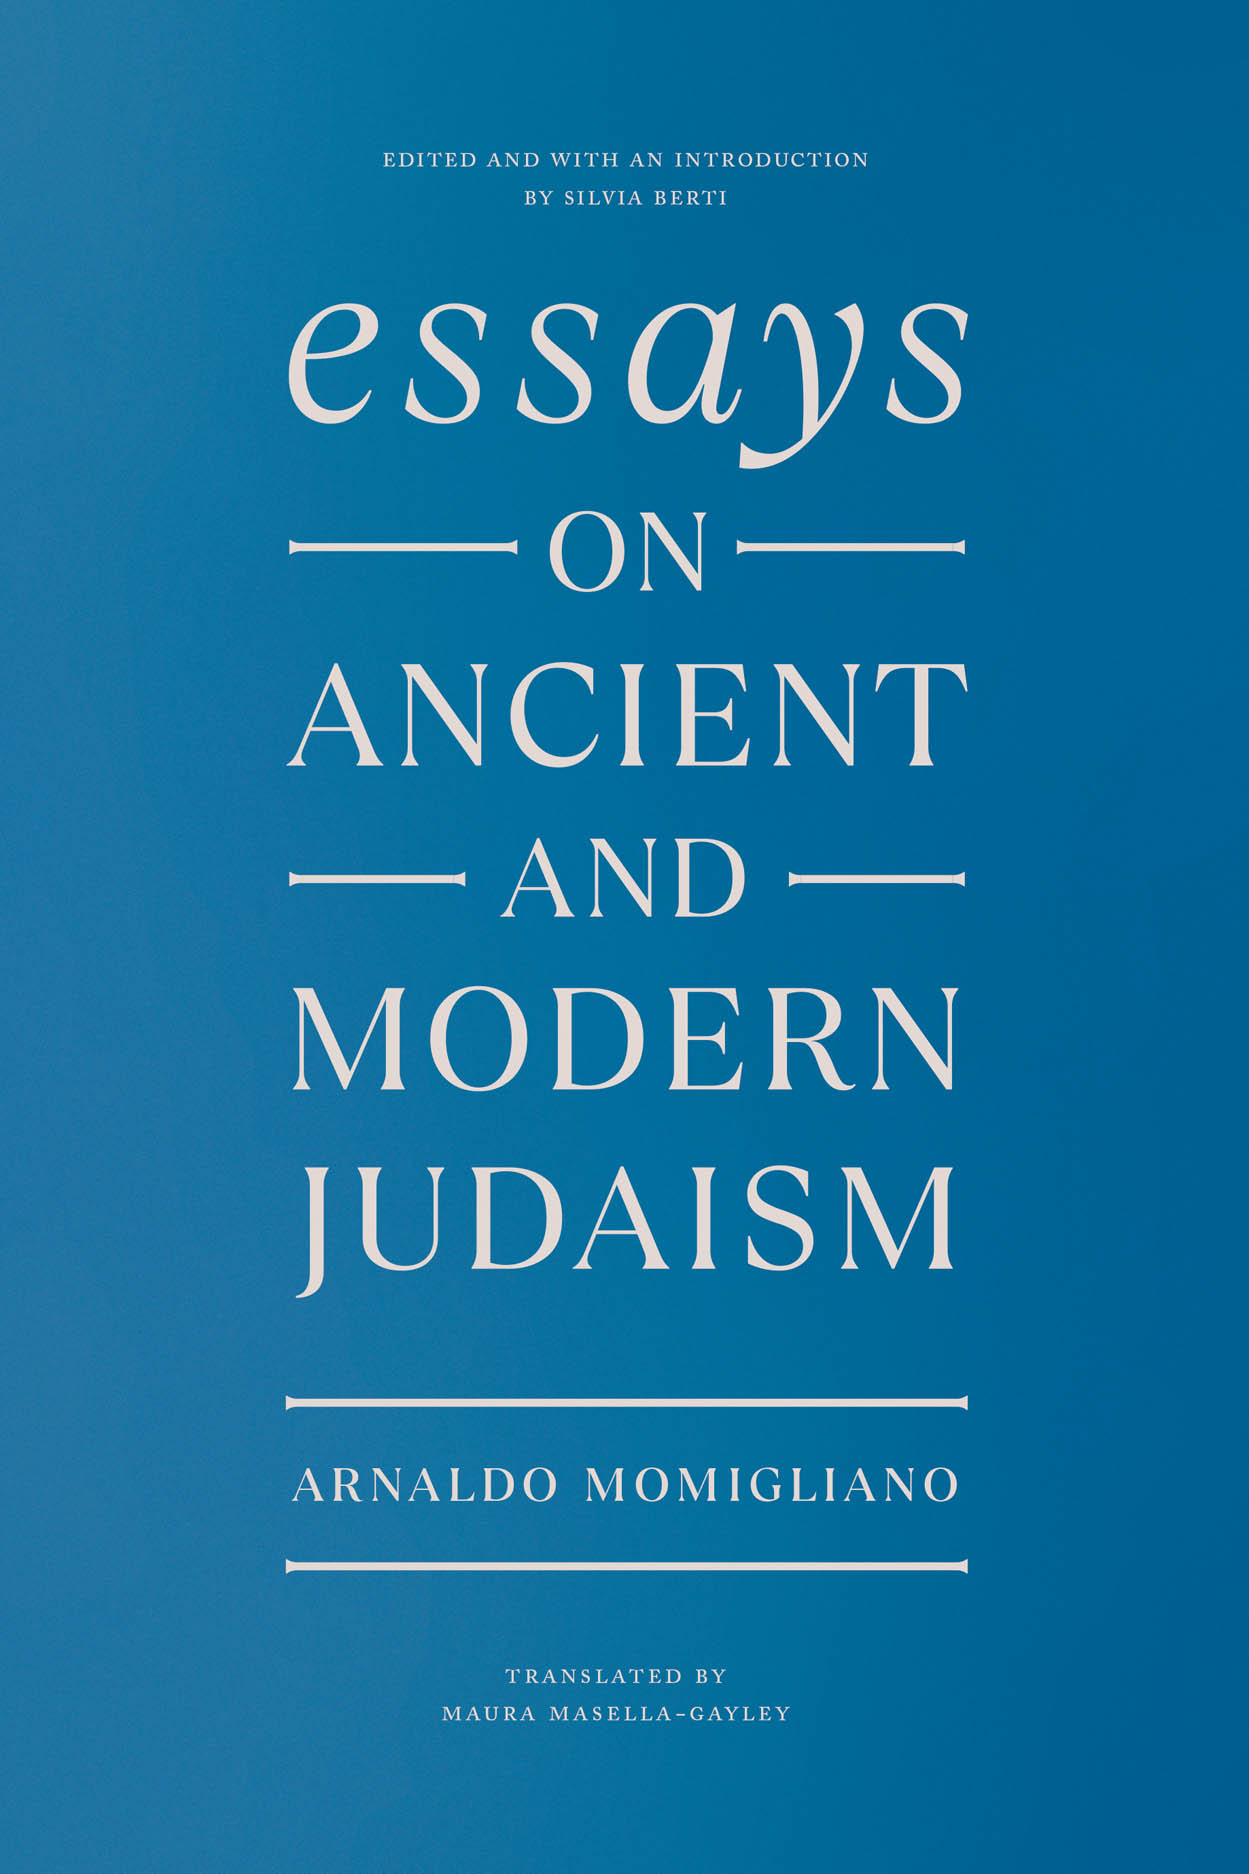 Essays on Ancient and Modern Judaism